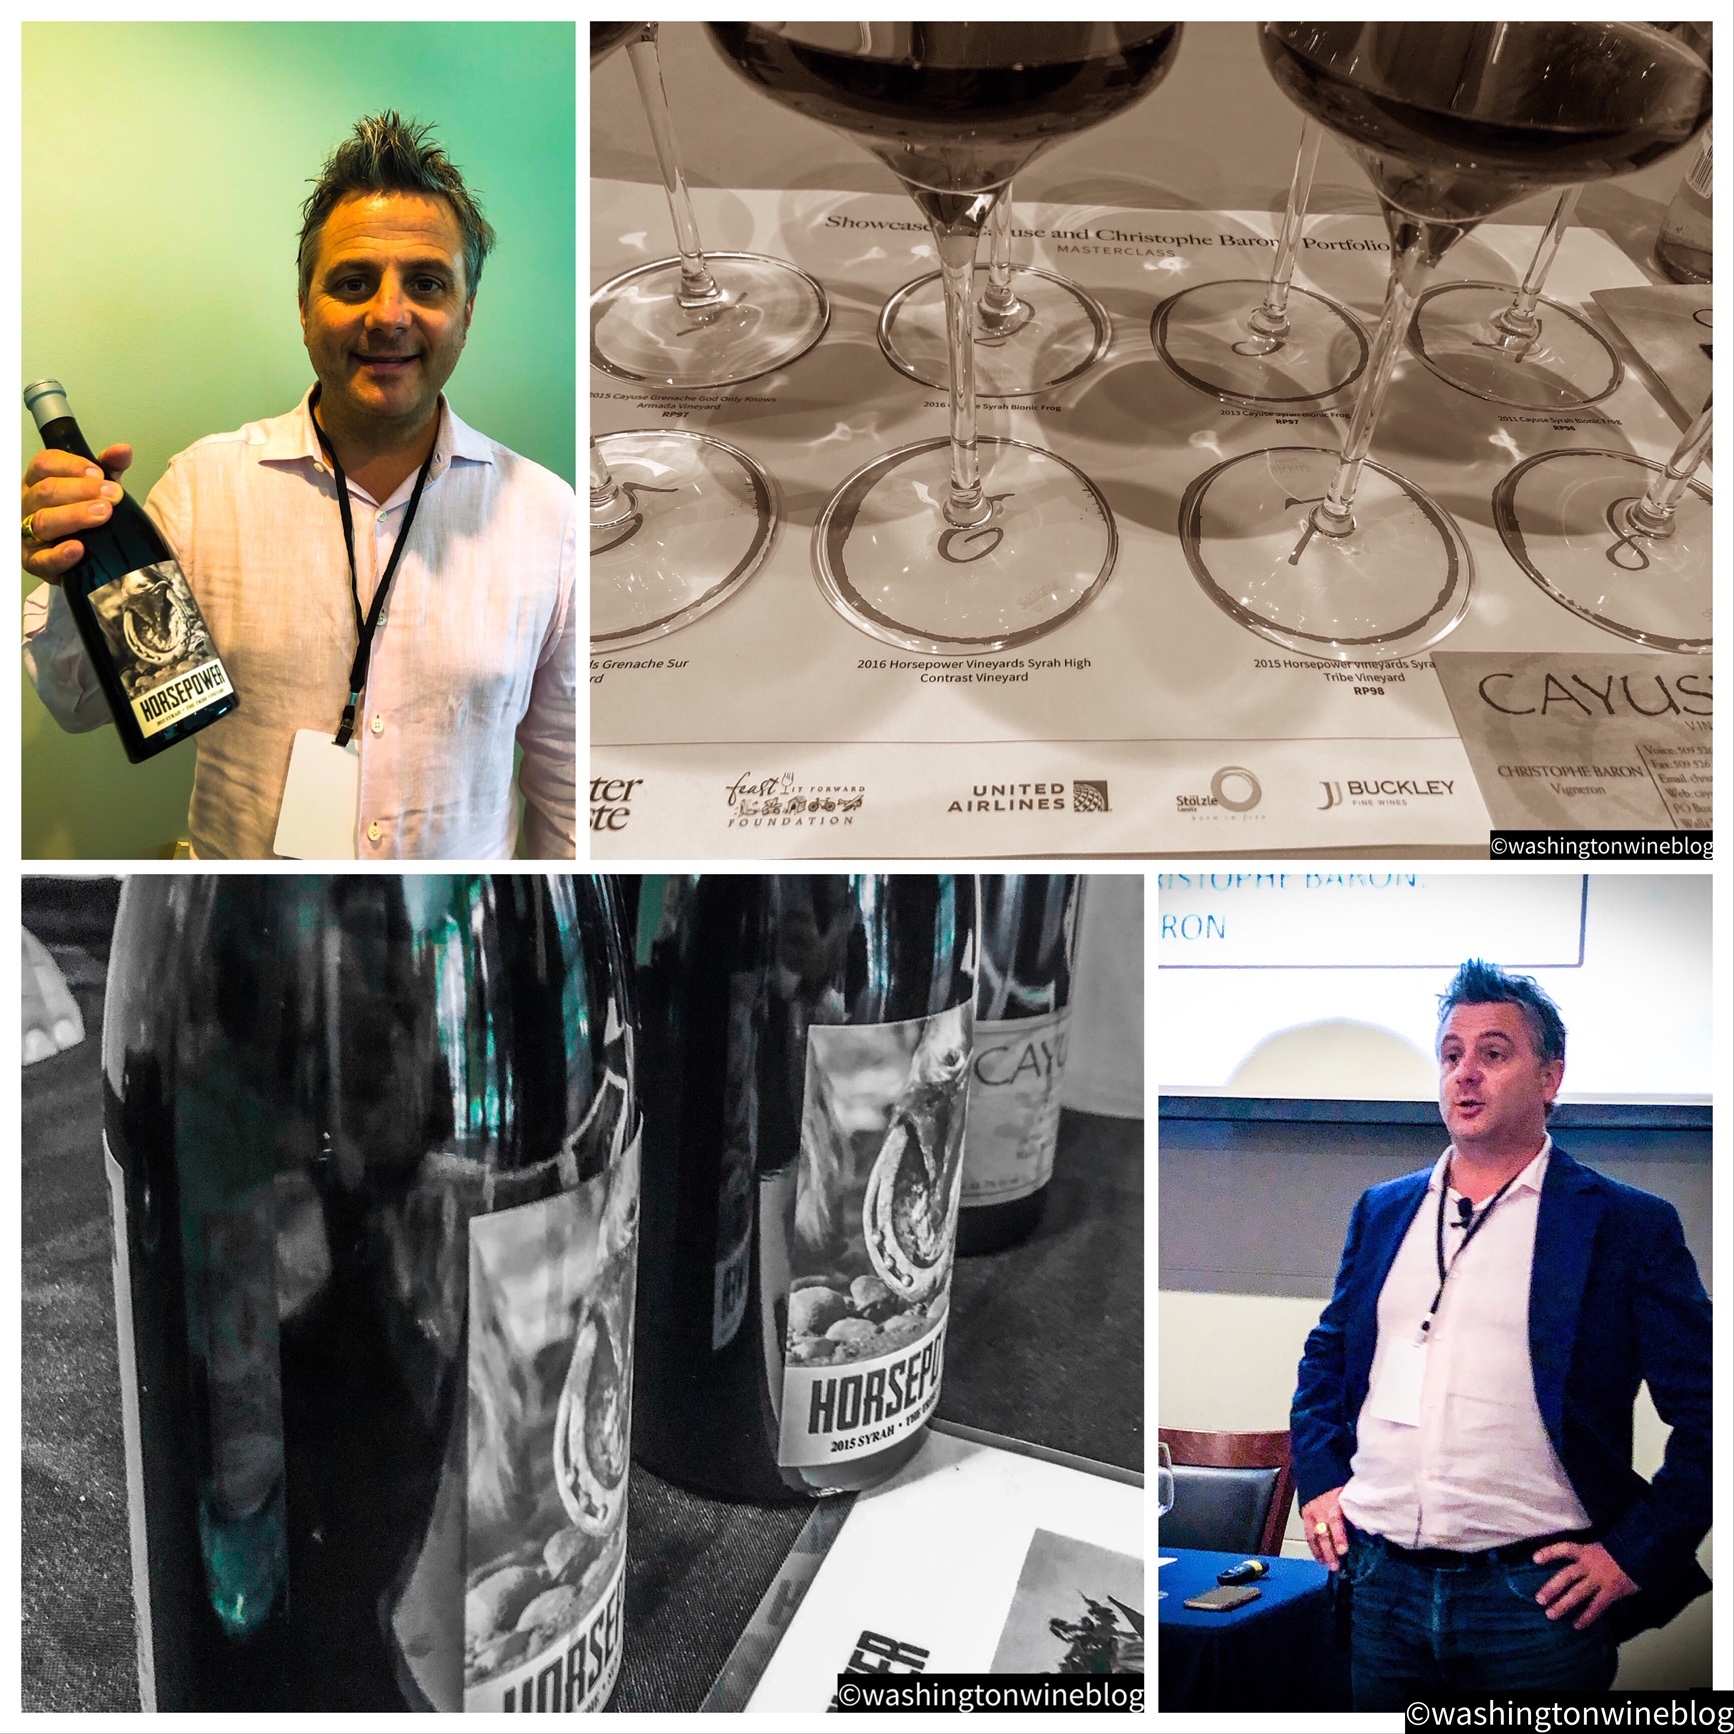 Superstar vigneron, Christophe Baron, guided us on an extraordinary adventure into Cayuse and Horsepower wines from the 2011, 2013, 2014, 2015 and 2015 vintages.